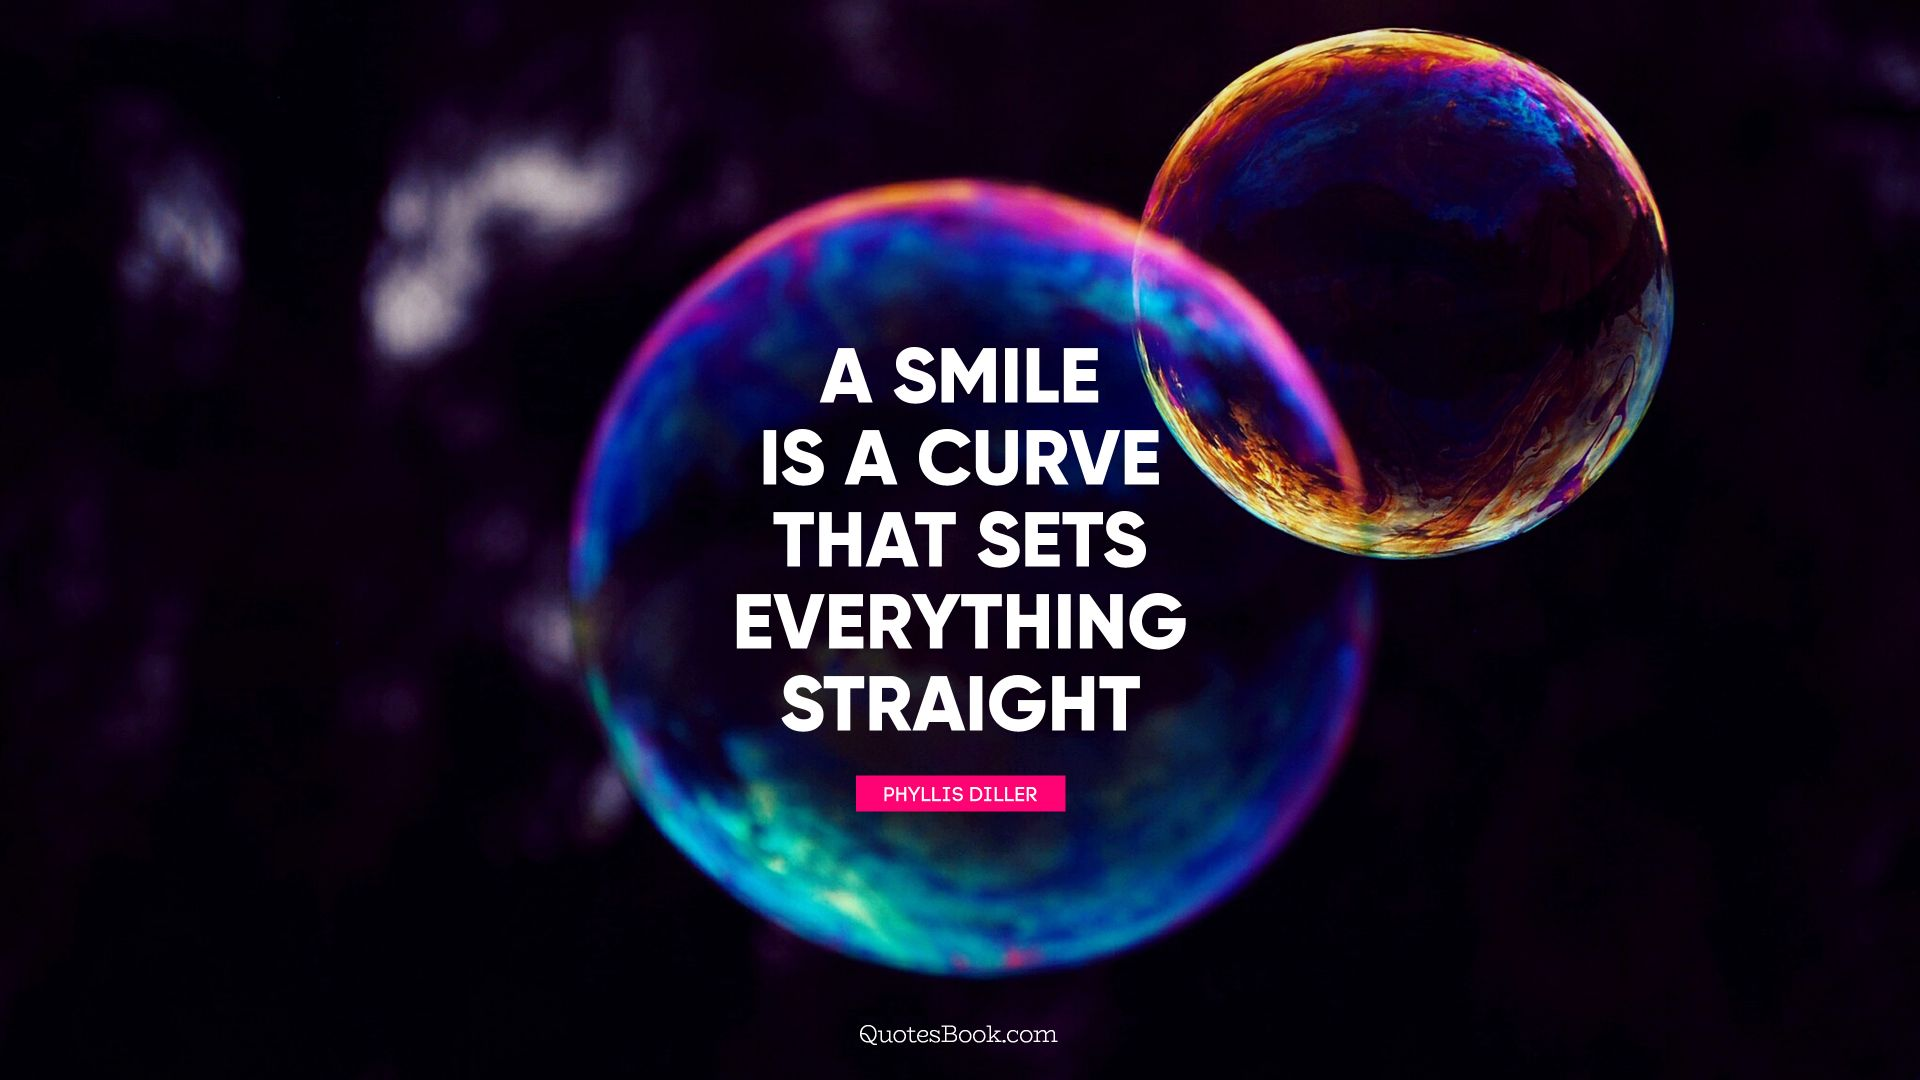 A smile is a curve that sets everything straight. - Quote by Phyllis Diller